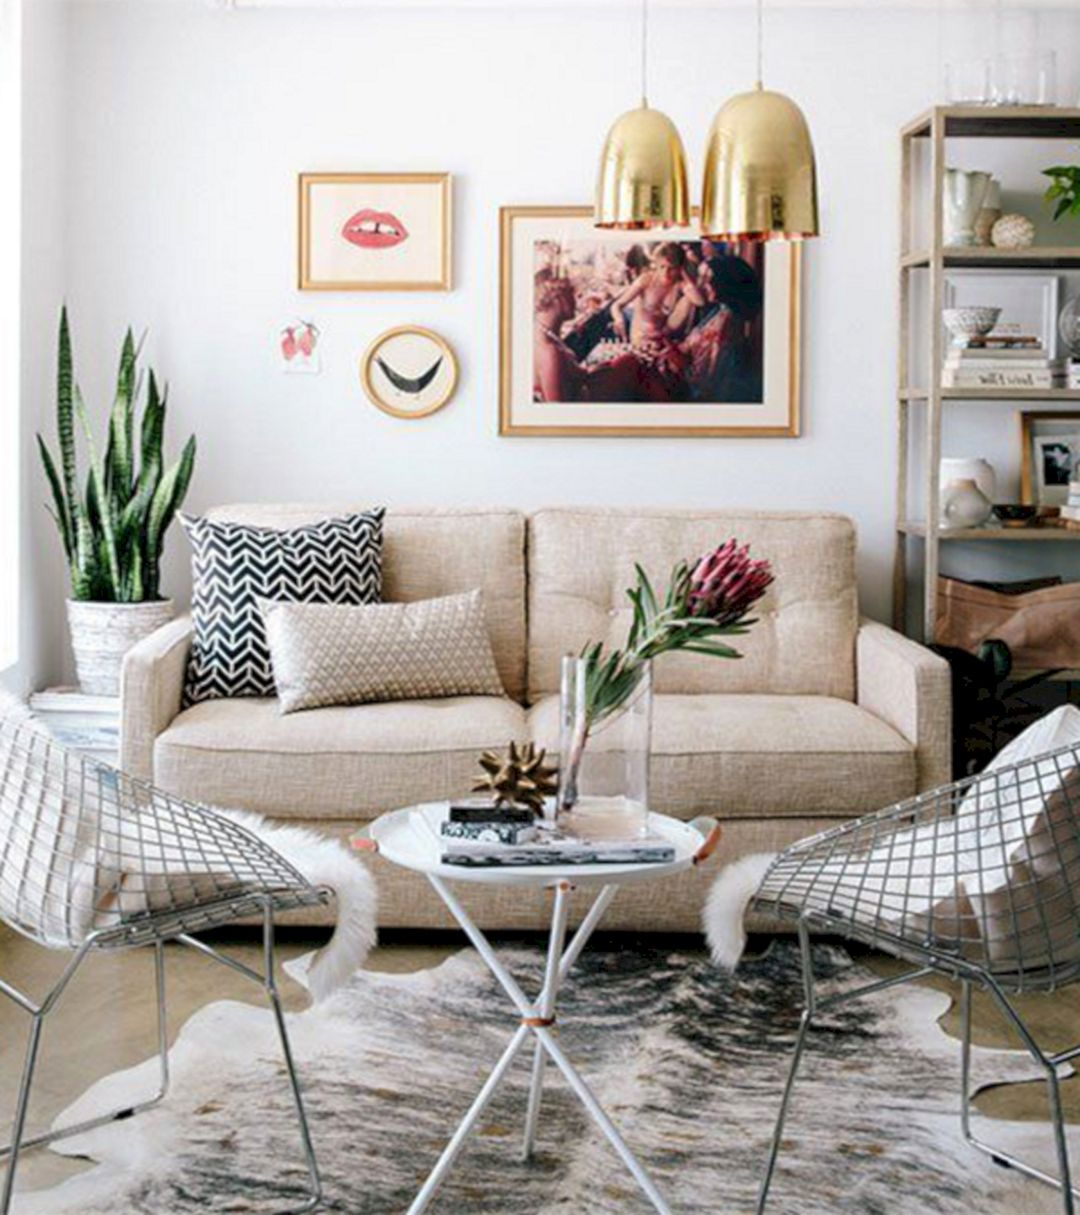 Decoration Examples For Small Living Rooms | iCreatived